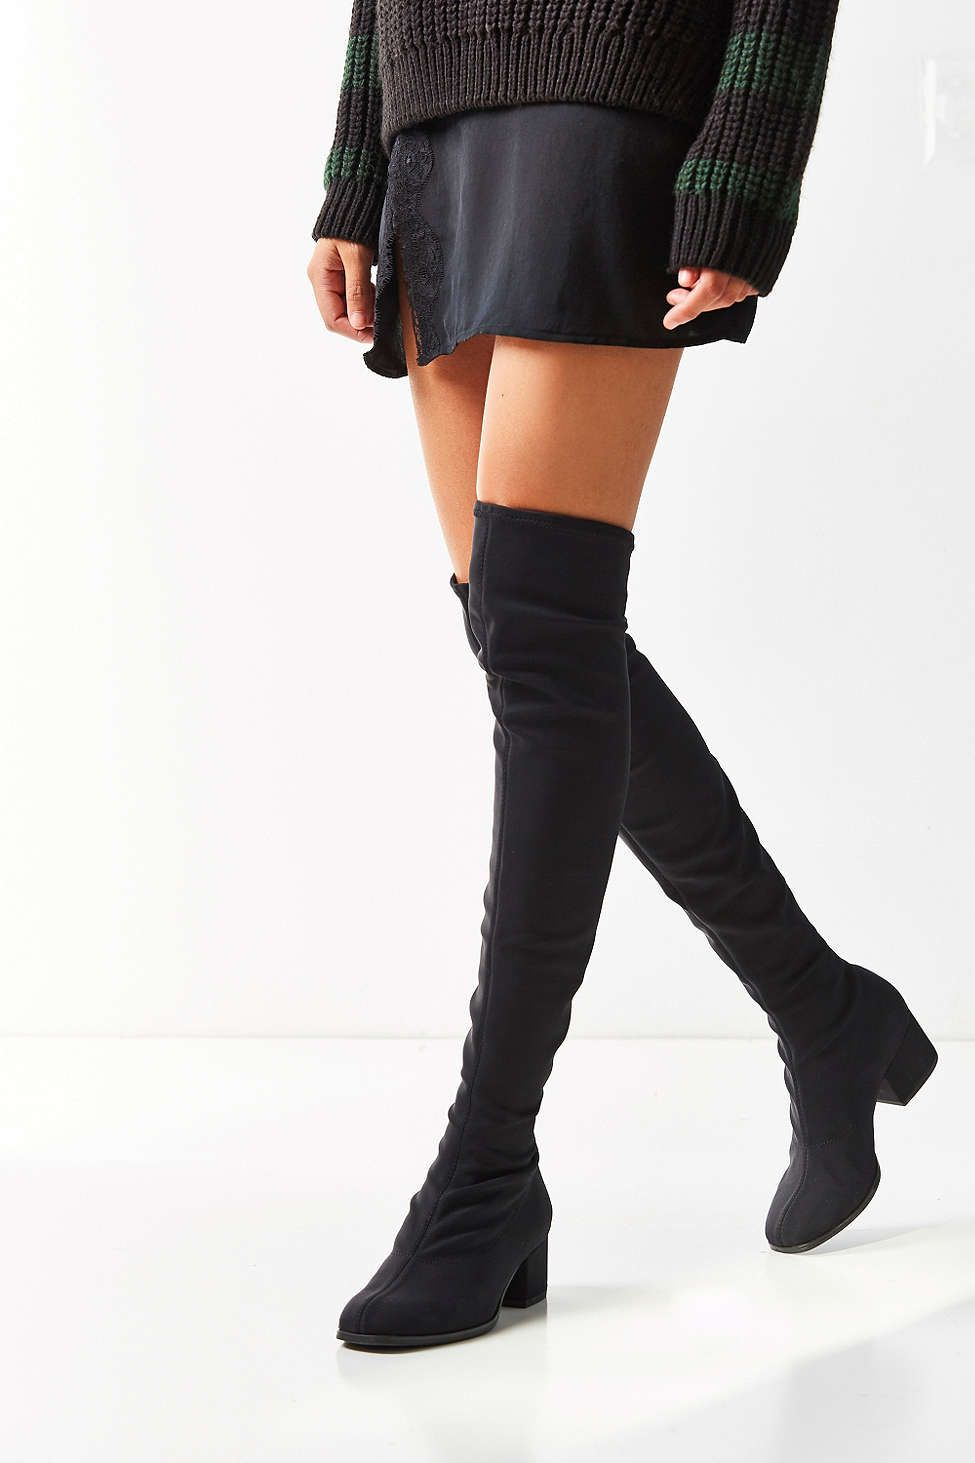 52f1f4ae535 Vagabond Daisy Over-The-Knee Boot